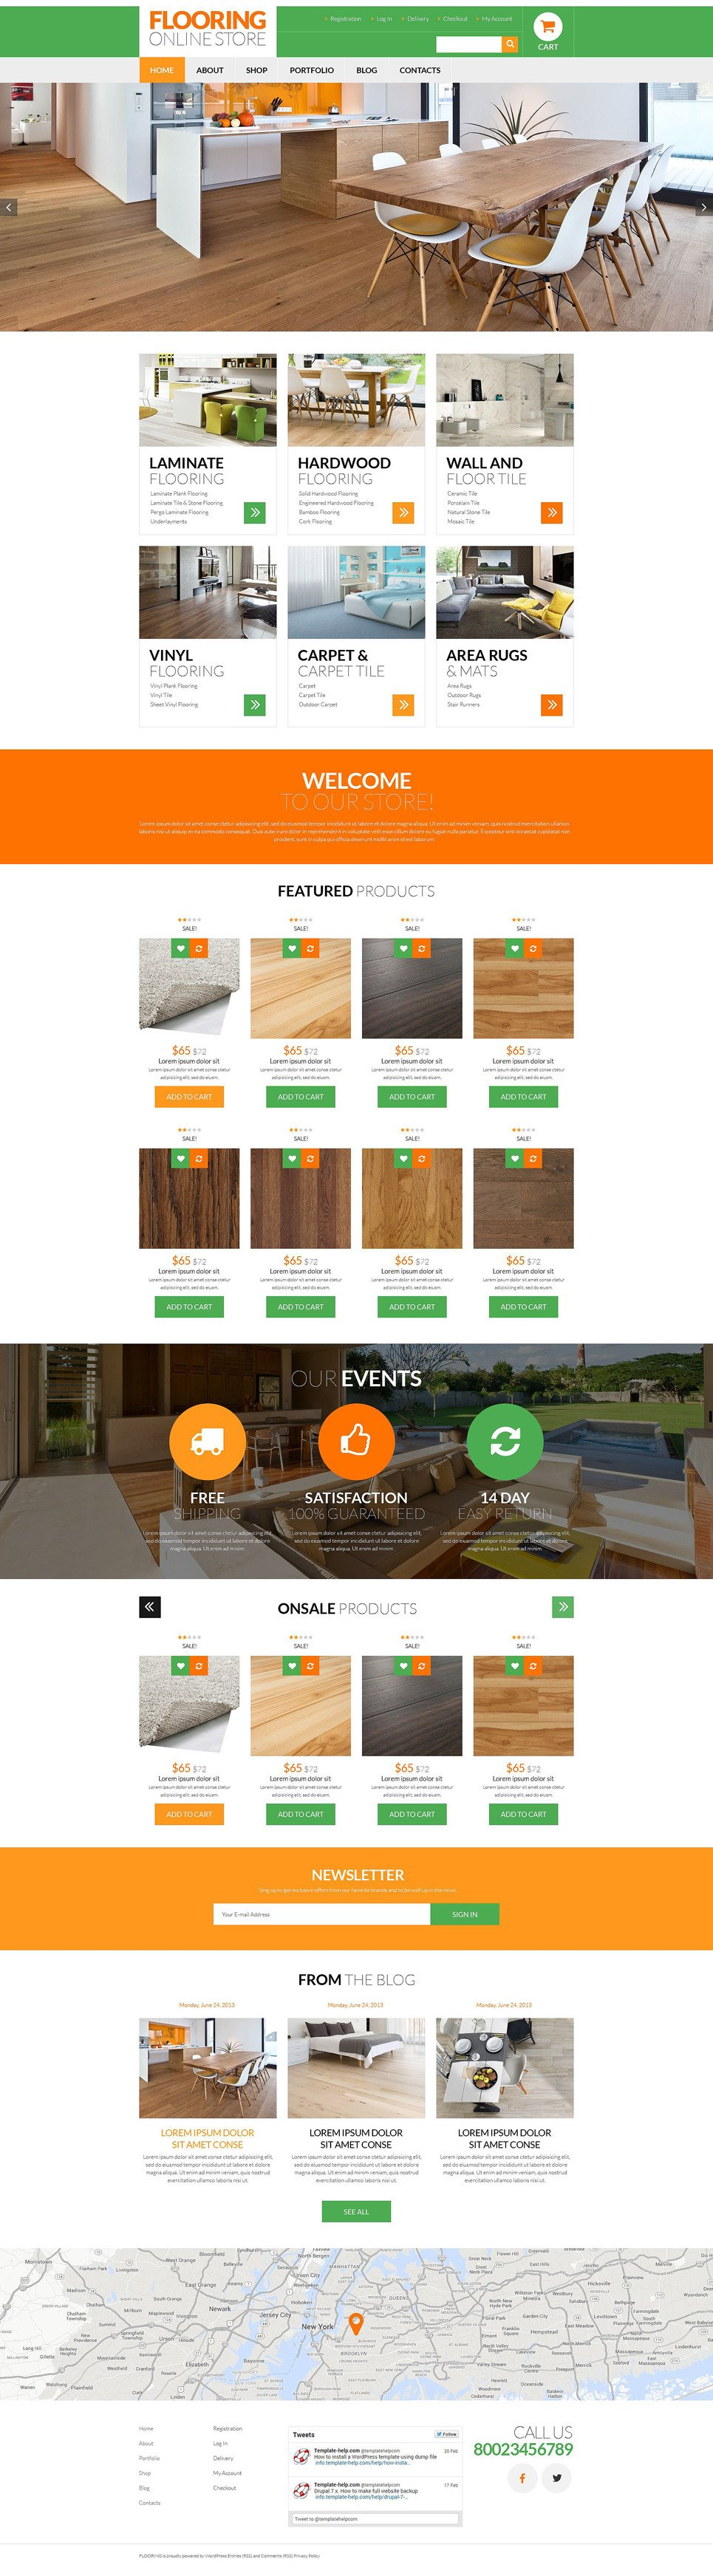 Flooring Services WooCommerce Theme New Screenshots BIG